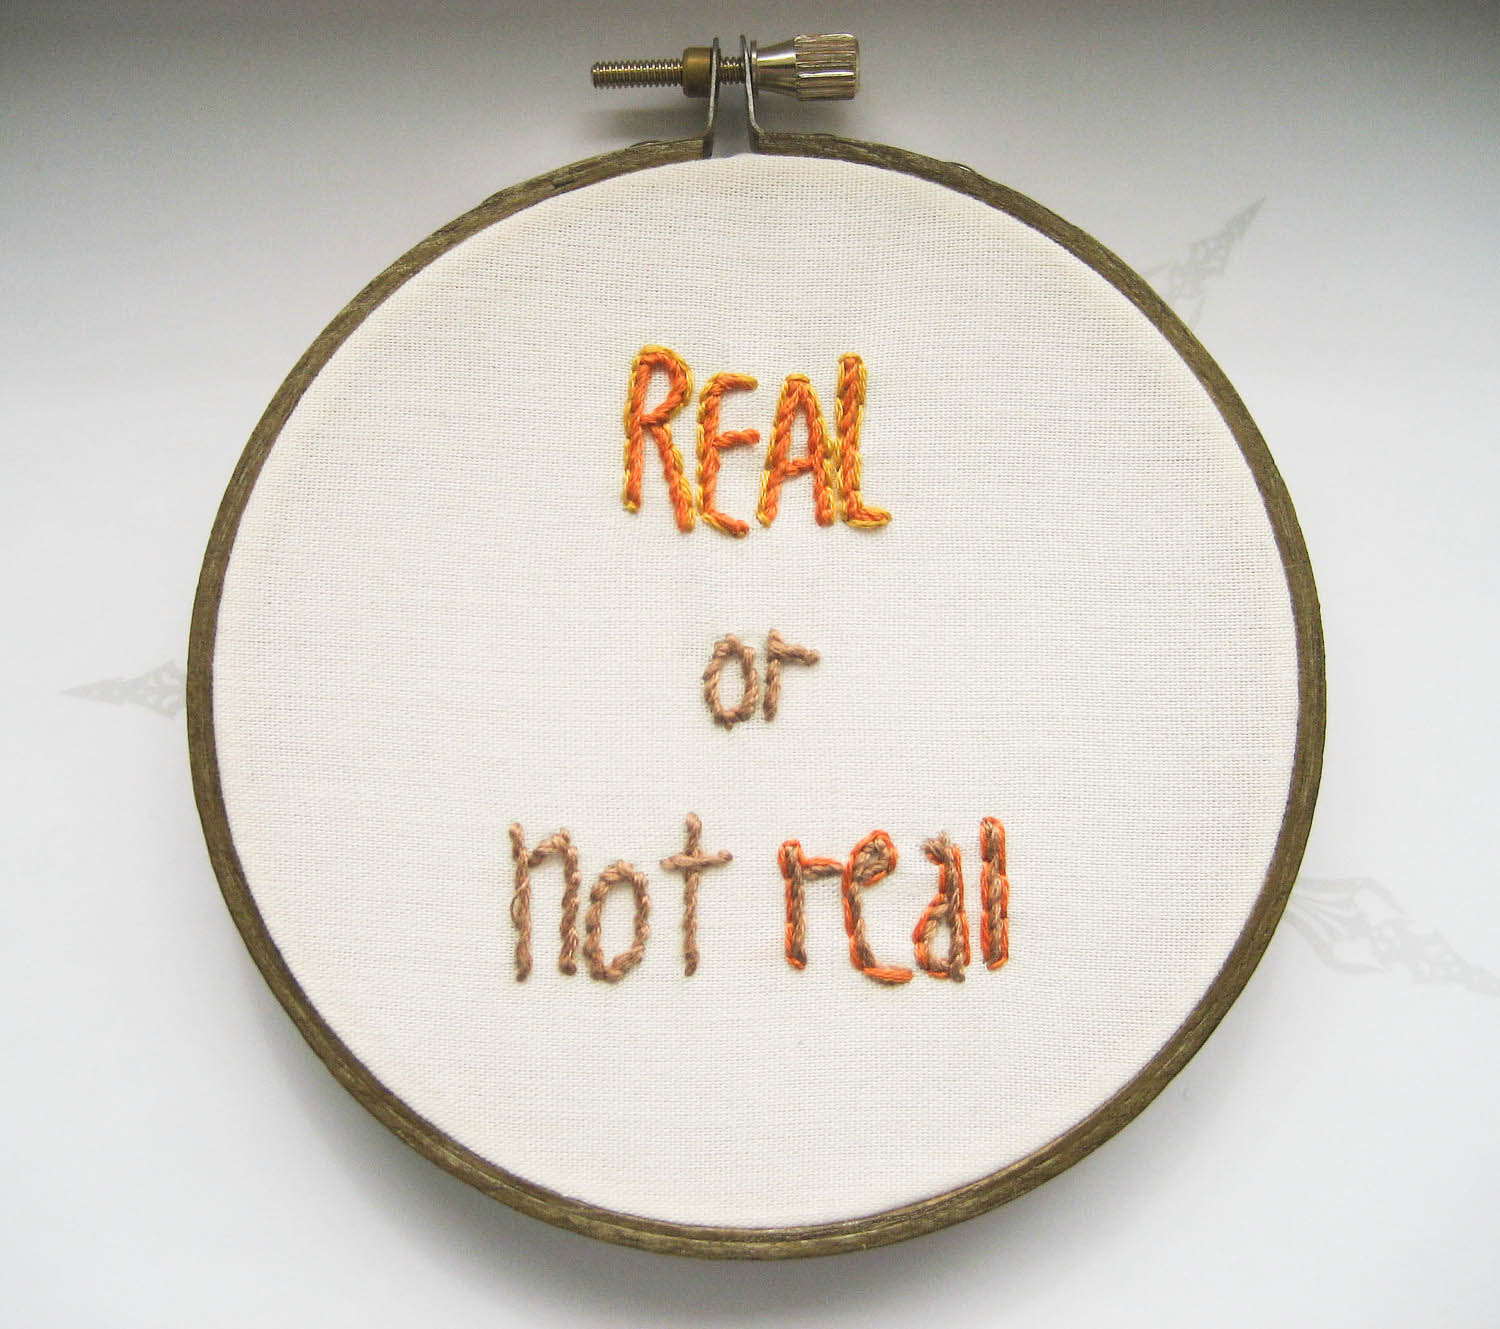 The Hunger Games Embroidery Hoop - Real or Not Real